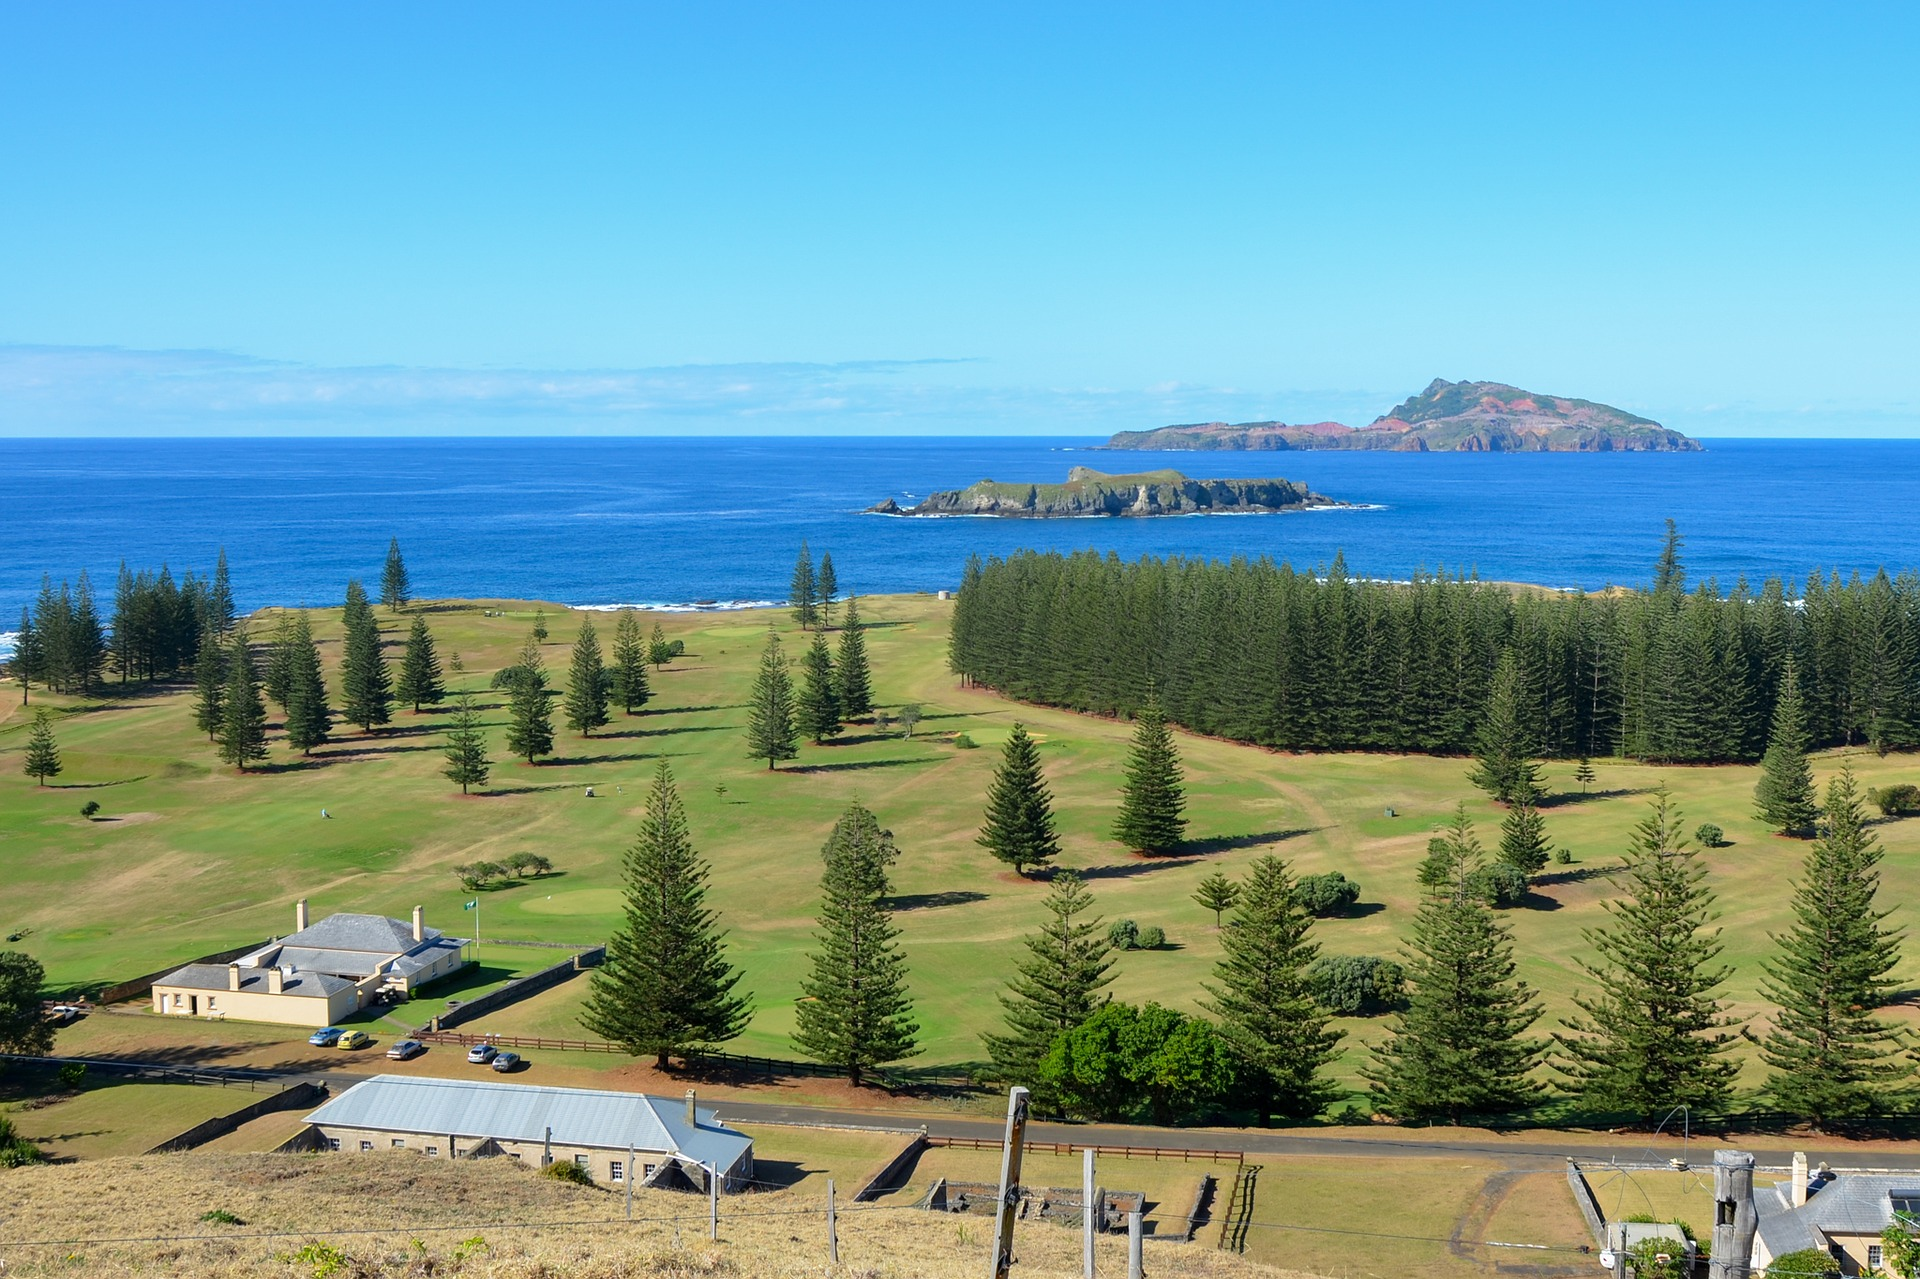 norfolk island photos